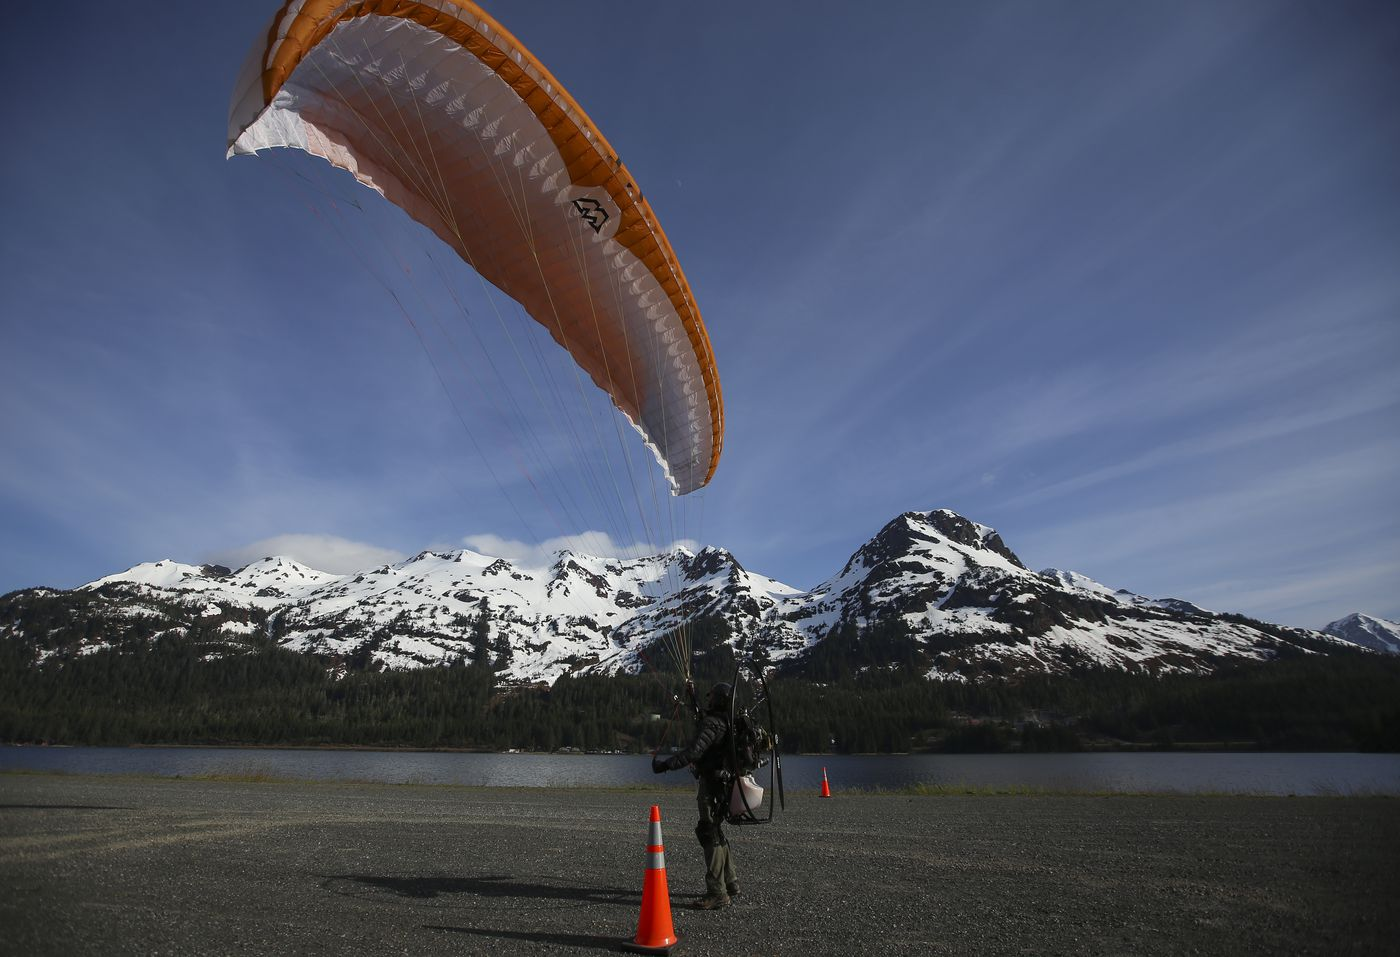 Leo Vargas attempts to take off with his powered paraglider from Cordova's city airstrip on Tuesday, May 18, 2021. (Emily Mesner / ADN)